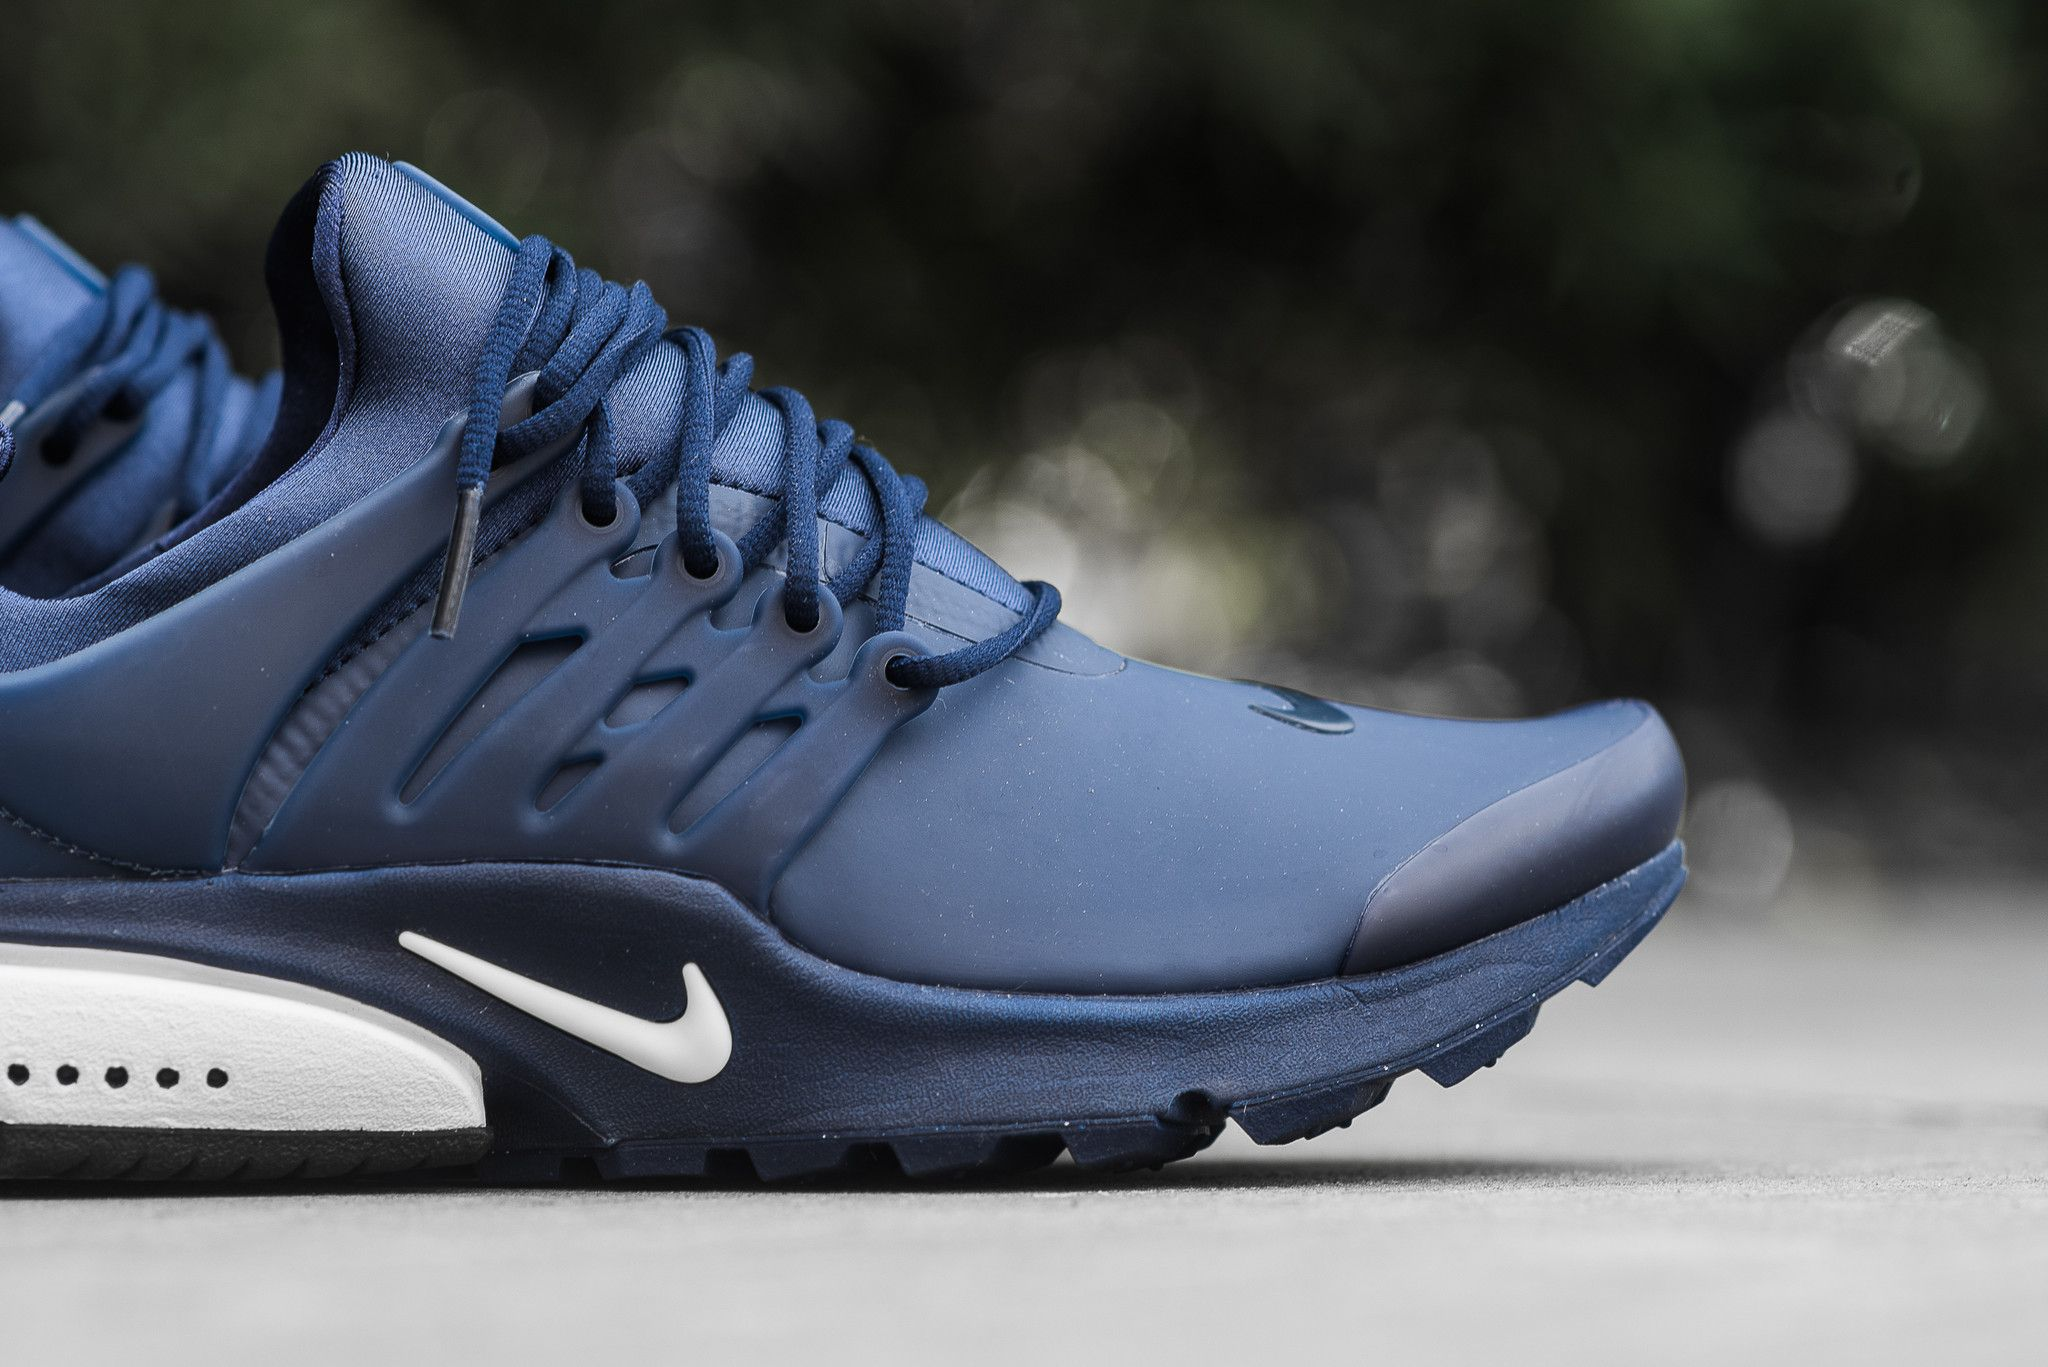 d5c6a4502b1 authentic the nike air presto low utility is rendered in binary blue white  for one of